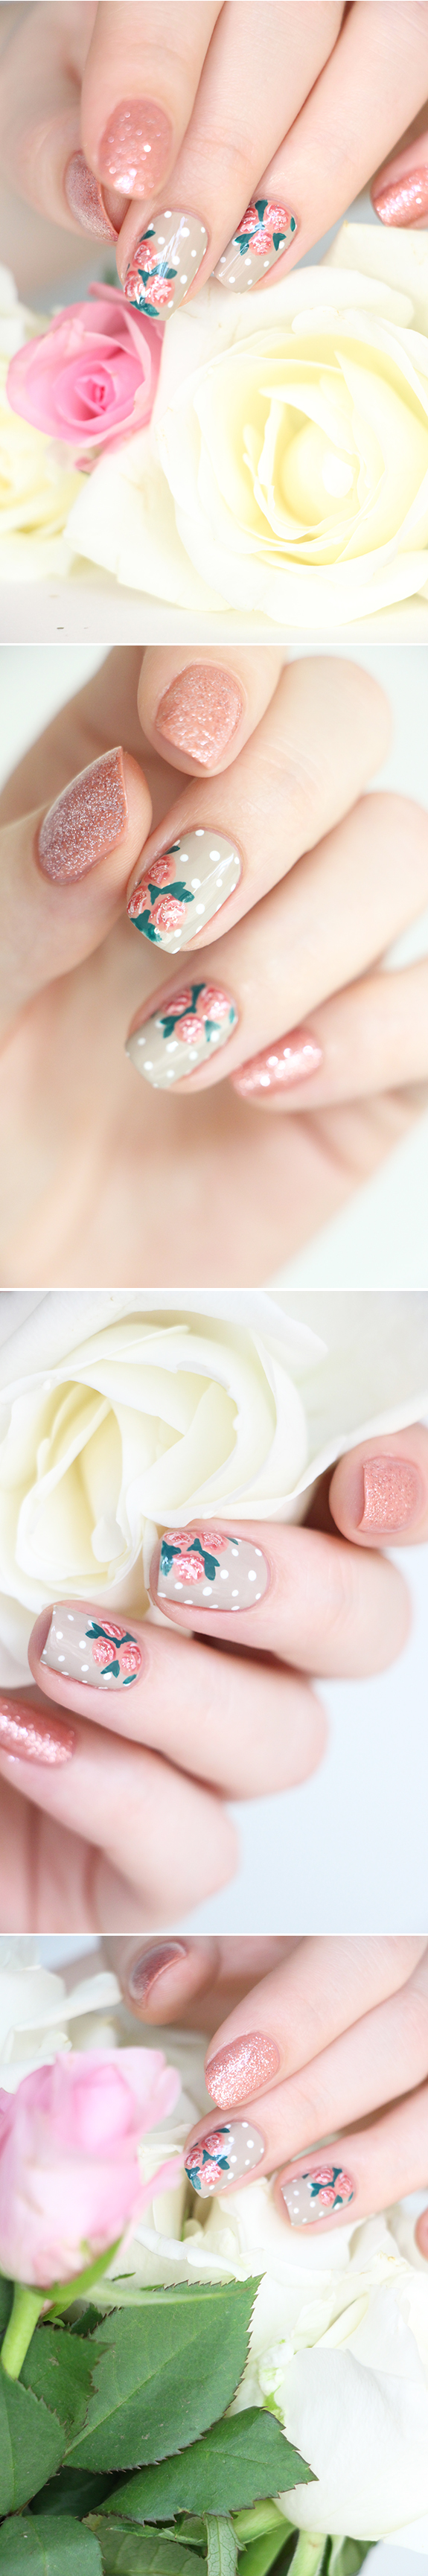 flowers-nails-2